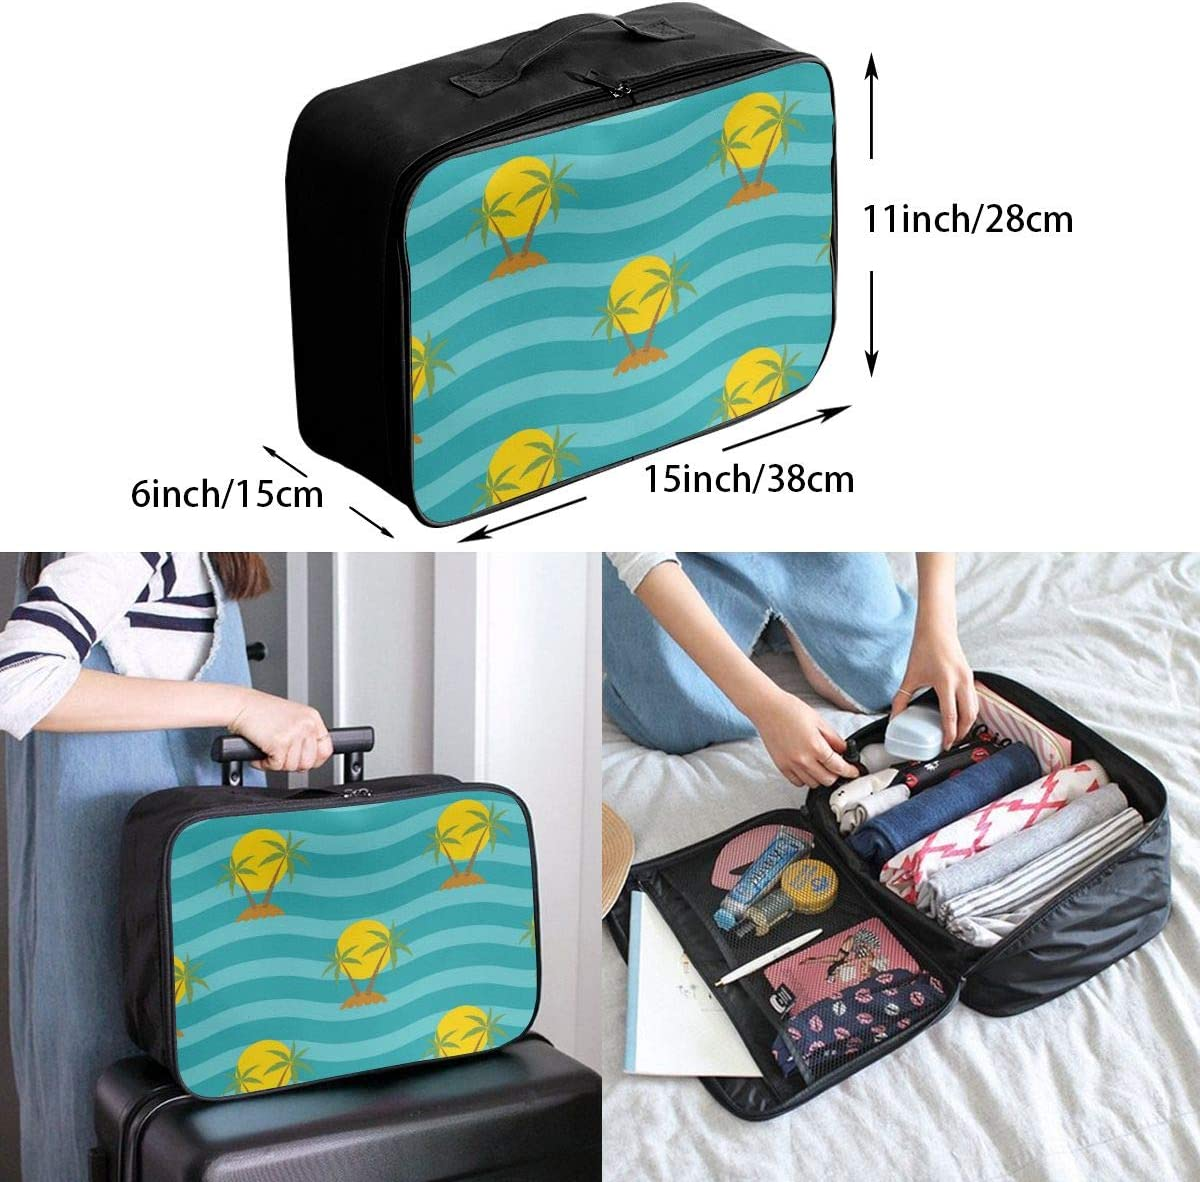 Yunshm Wave Blue Striped Palm Tree Travel Customized Trolley Handbag Waterproof Unisex Large Capacity For Business Travel Storage